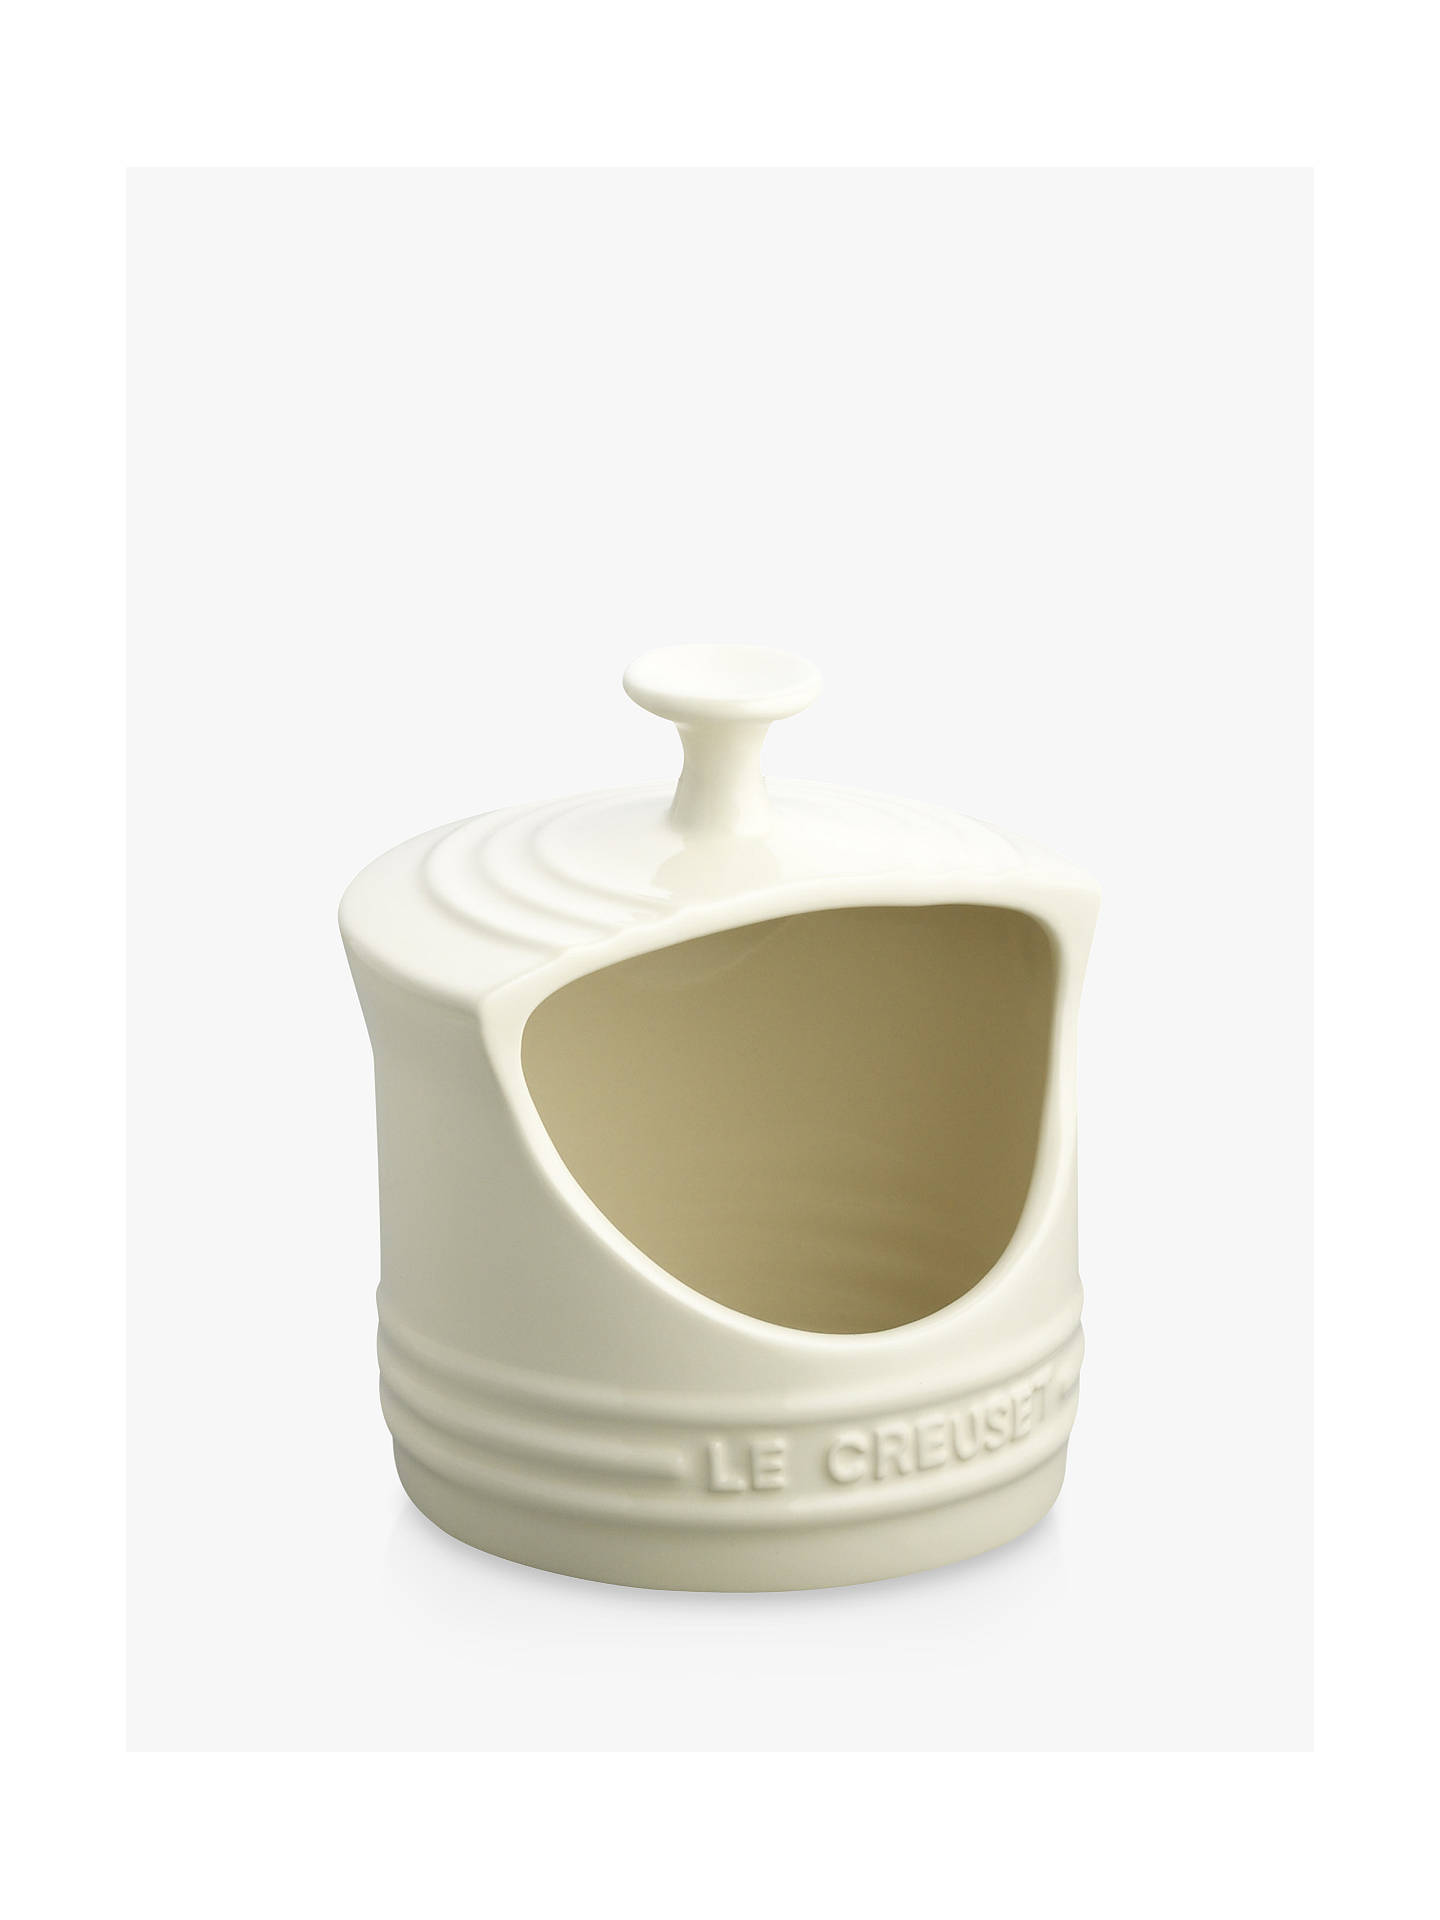 Buy Le Creuset Stoneware Salt Pig, Almond Online at johnlewis.com